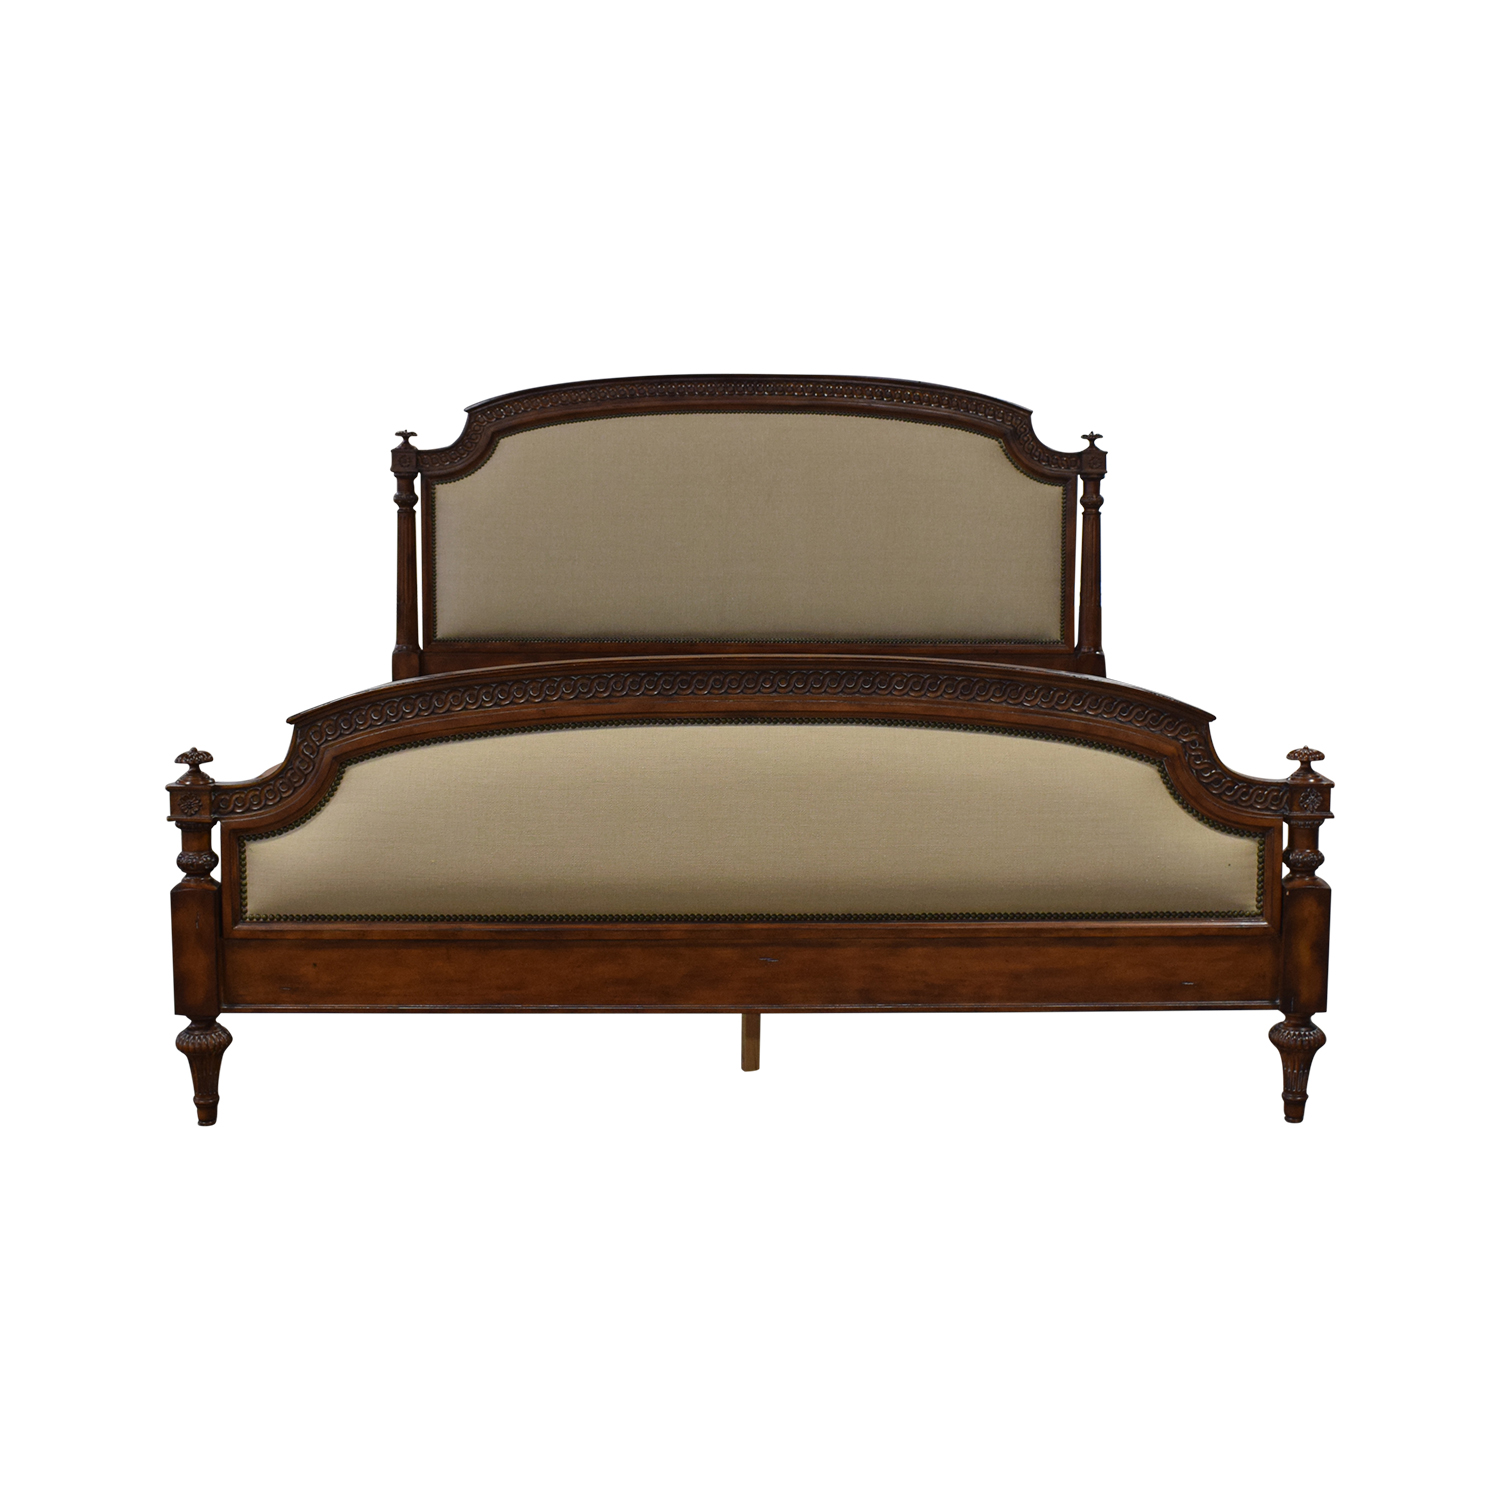 Hickory House Hickory House Rue De Province Carved Wood Upholstered Nailhead King Bed Frame Brown